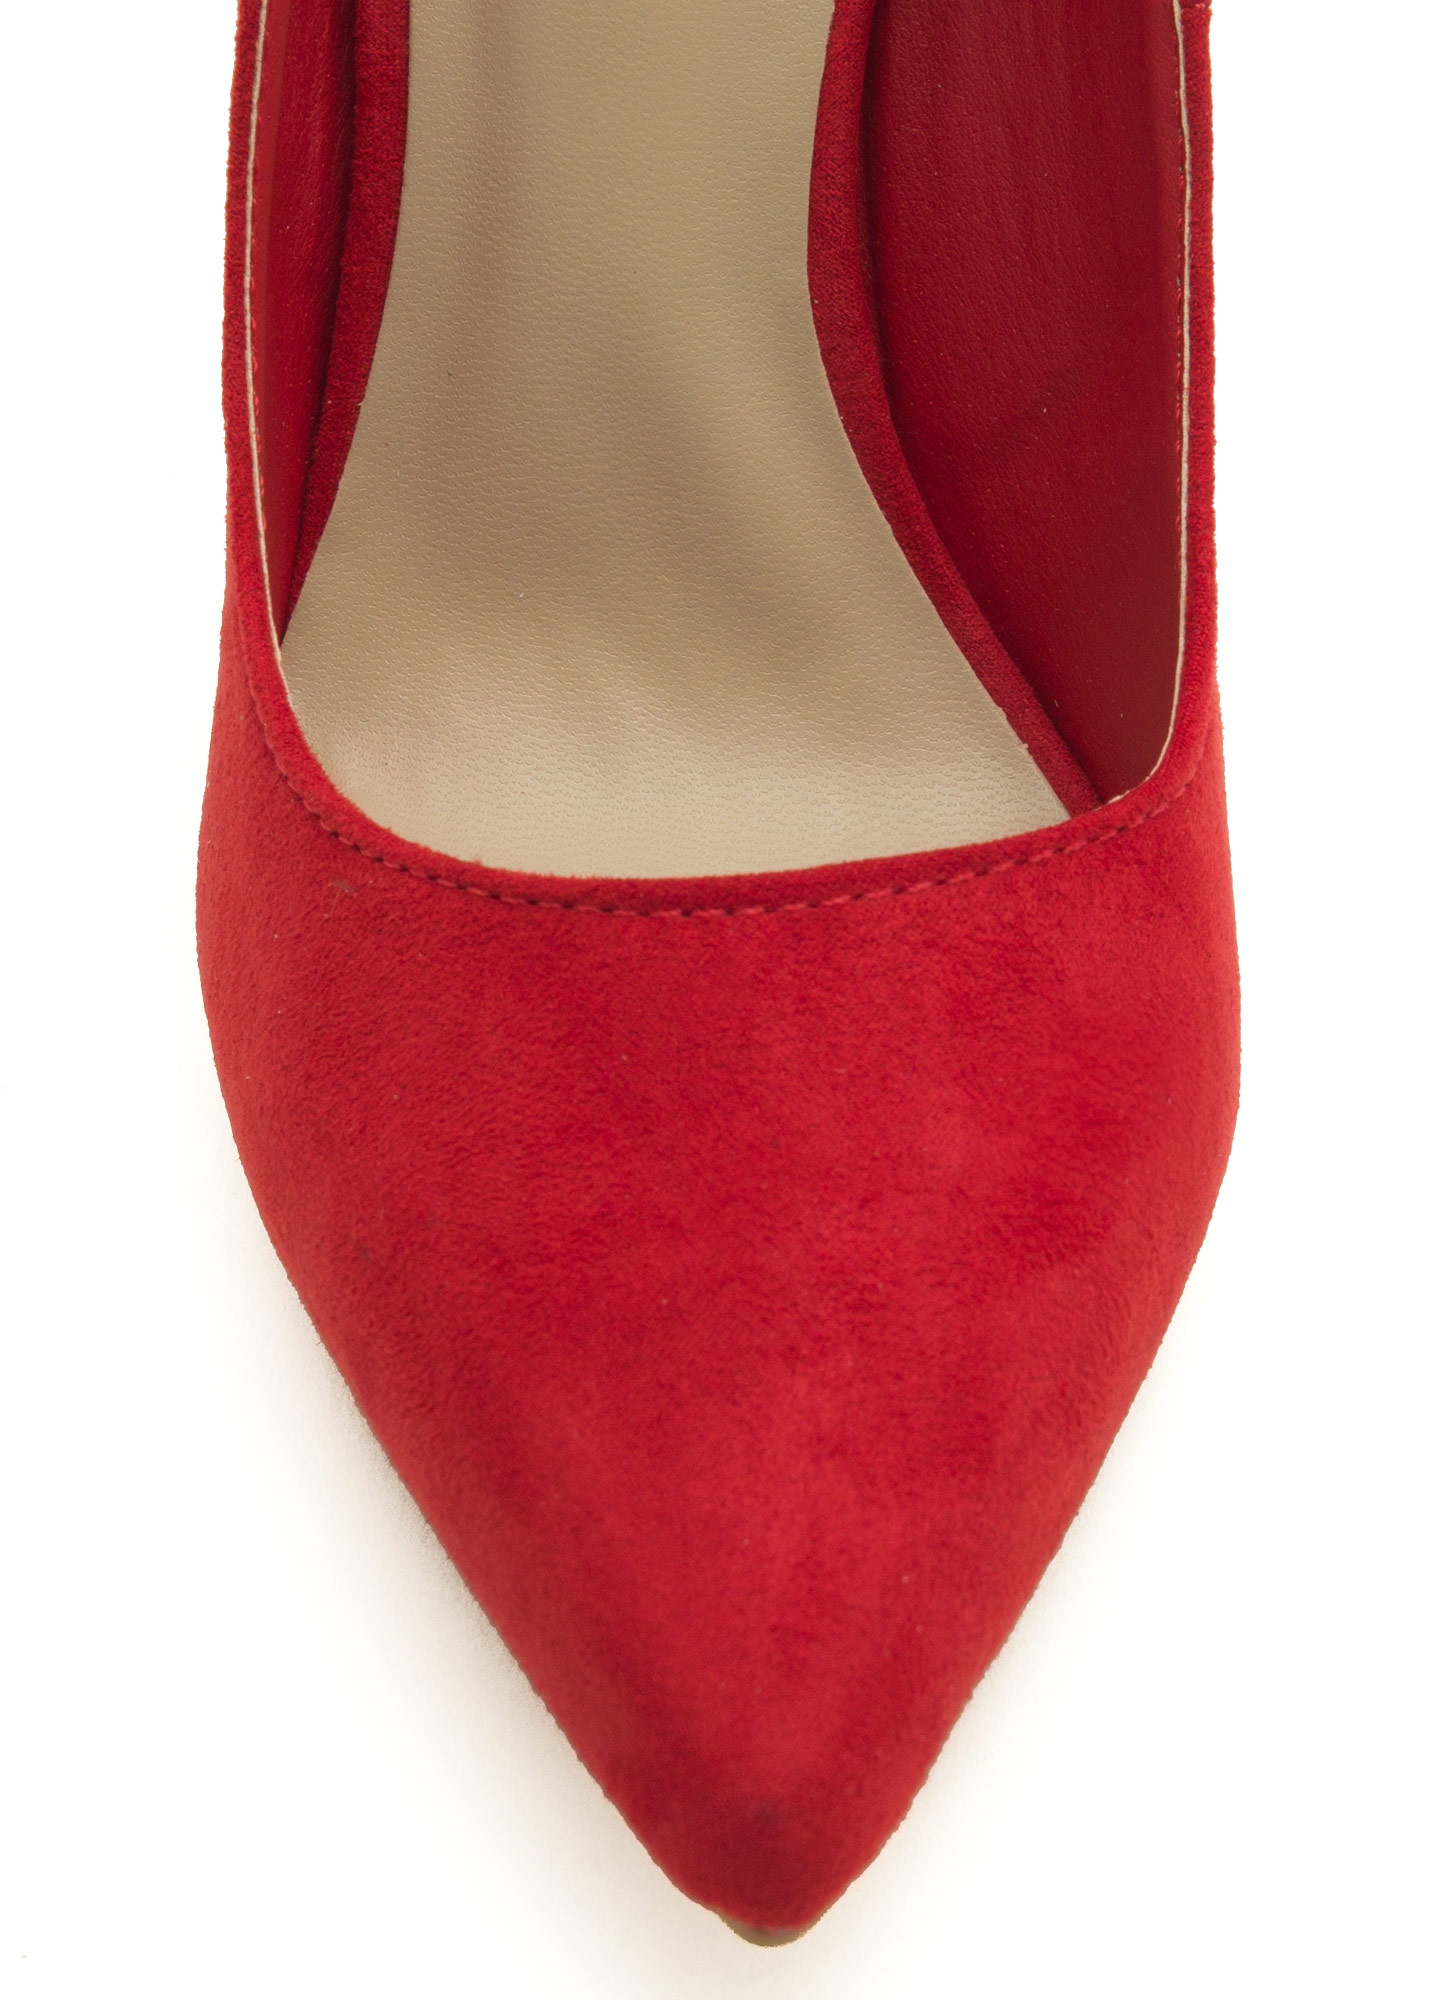 To The Point Faux Suede Heels RED